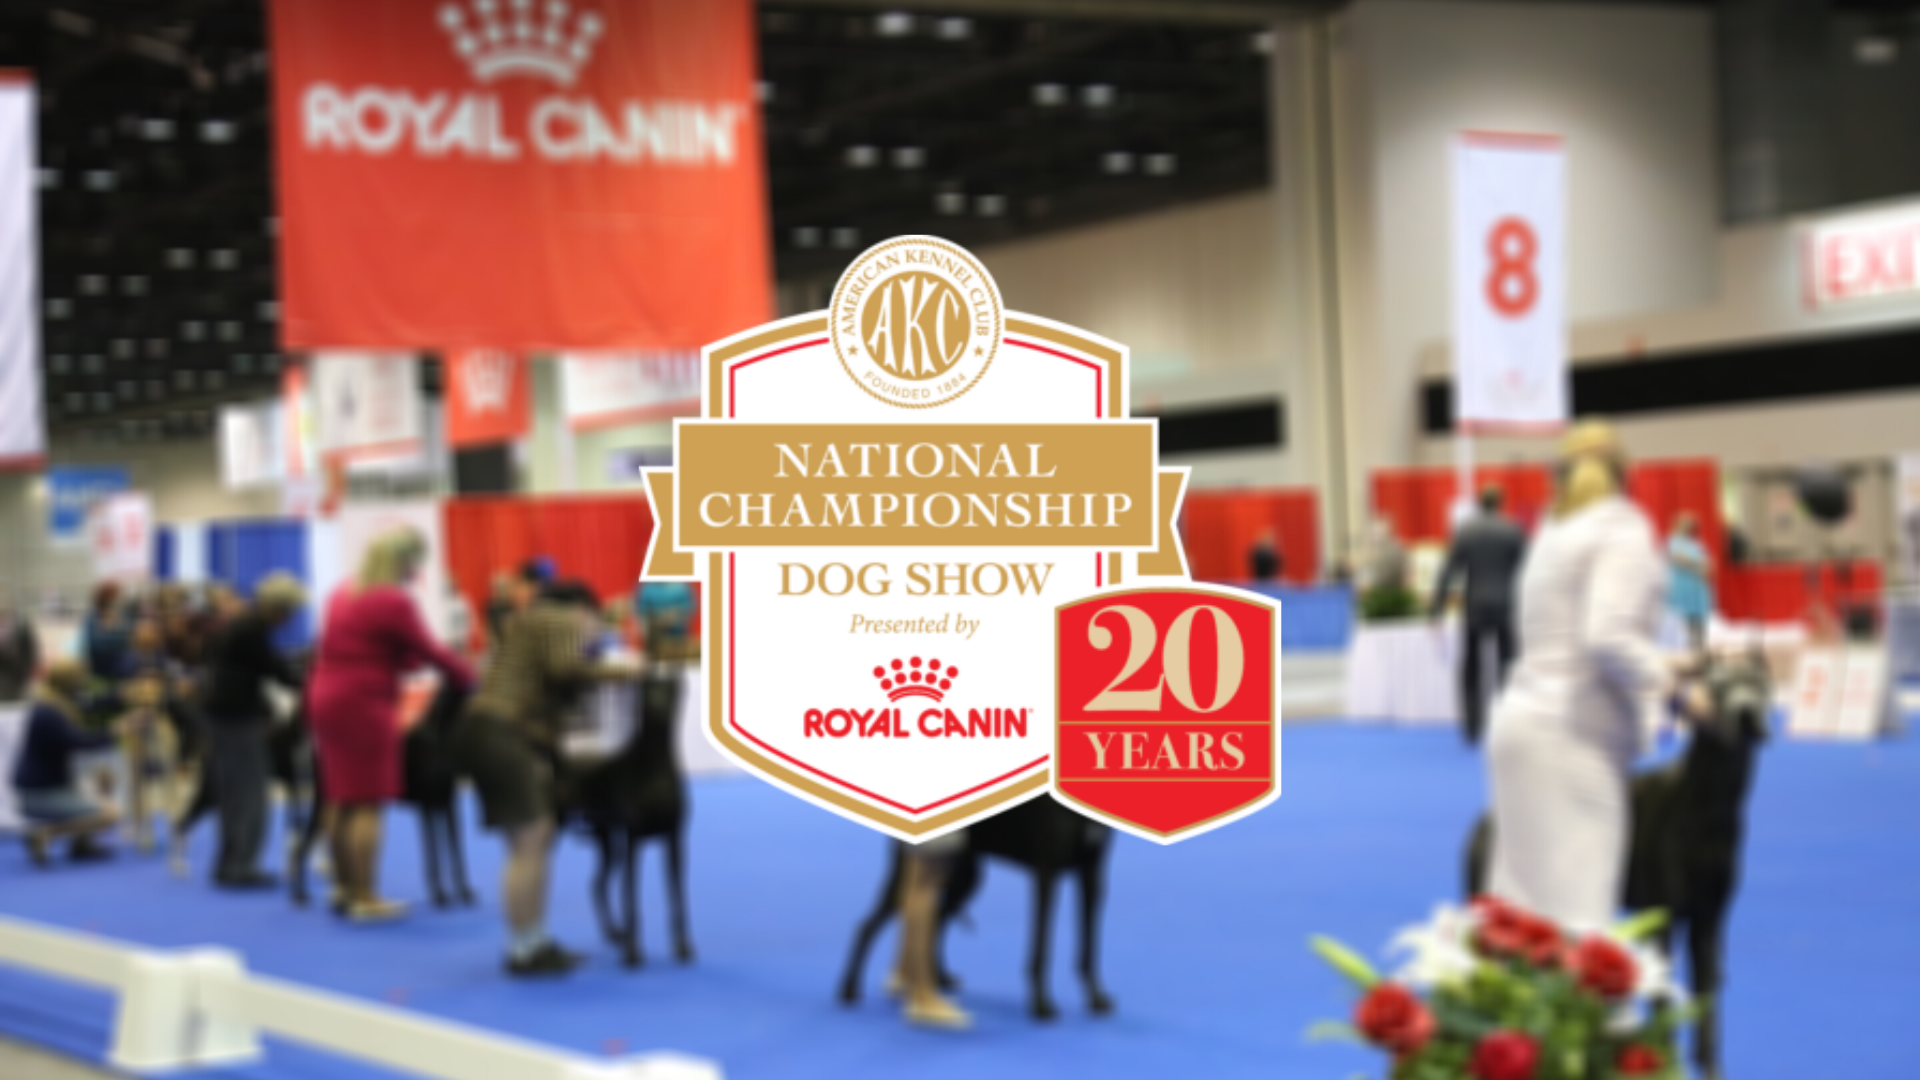 American Kennel Club logo on blurred out image of the AKC 2020 National Championship